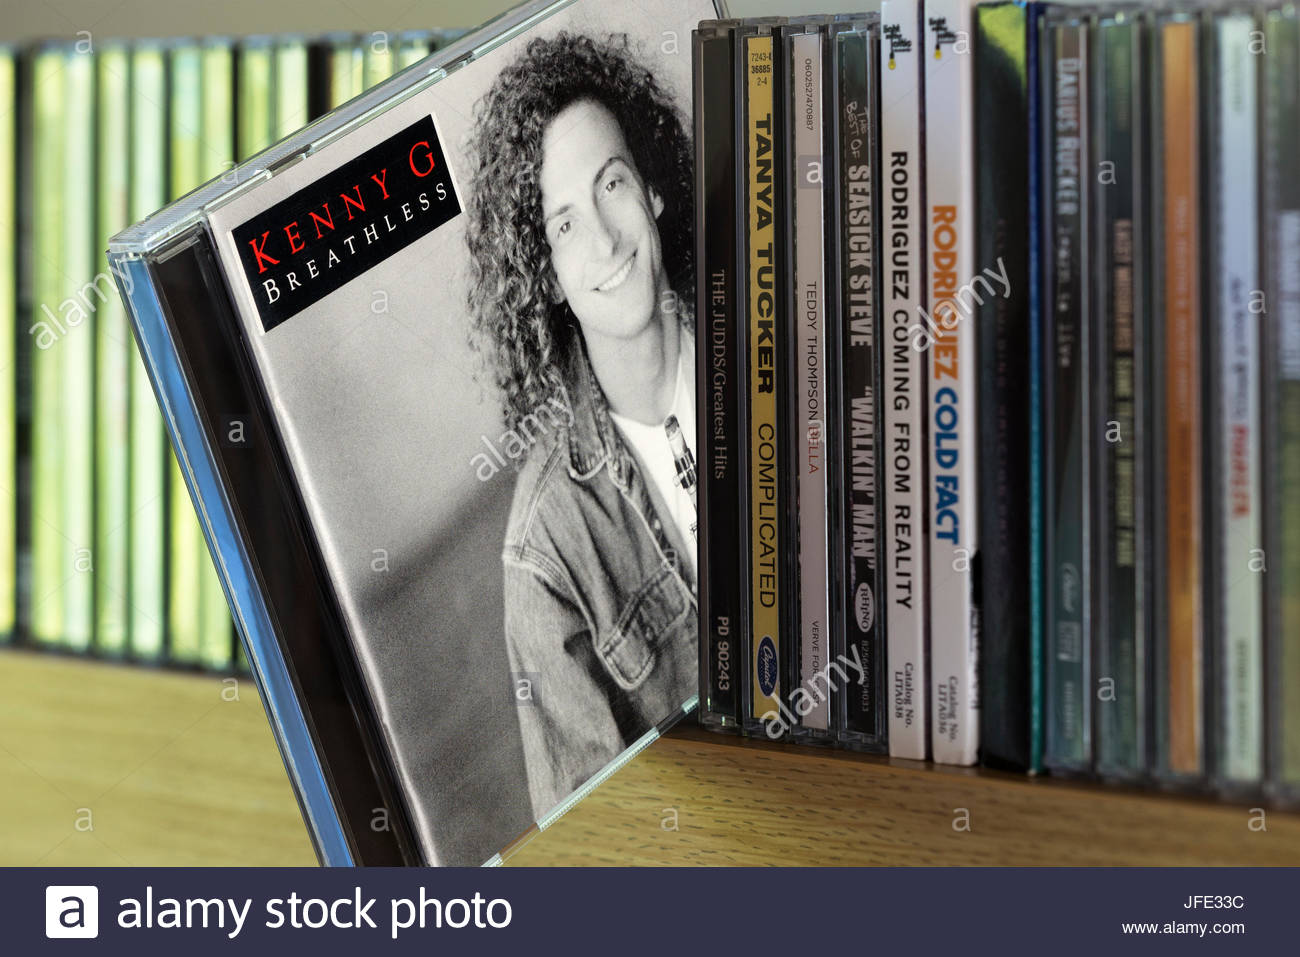 Breathless, Kenny G CD pulled out from among other CD's on a shelf, Dorset, England - Stock Image